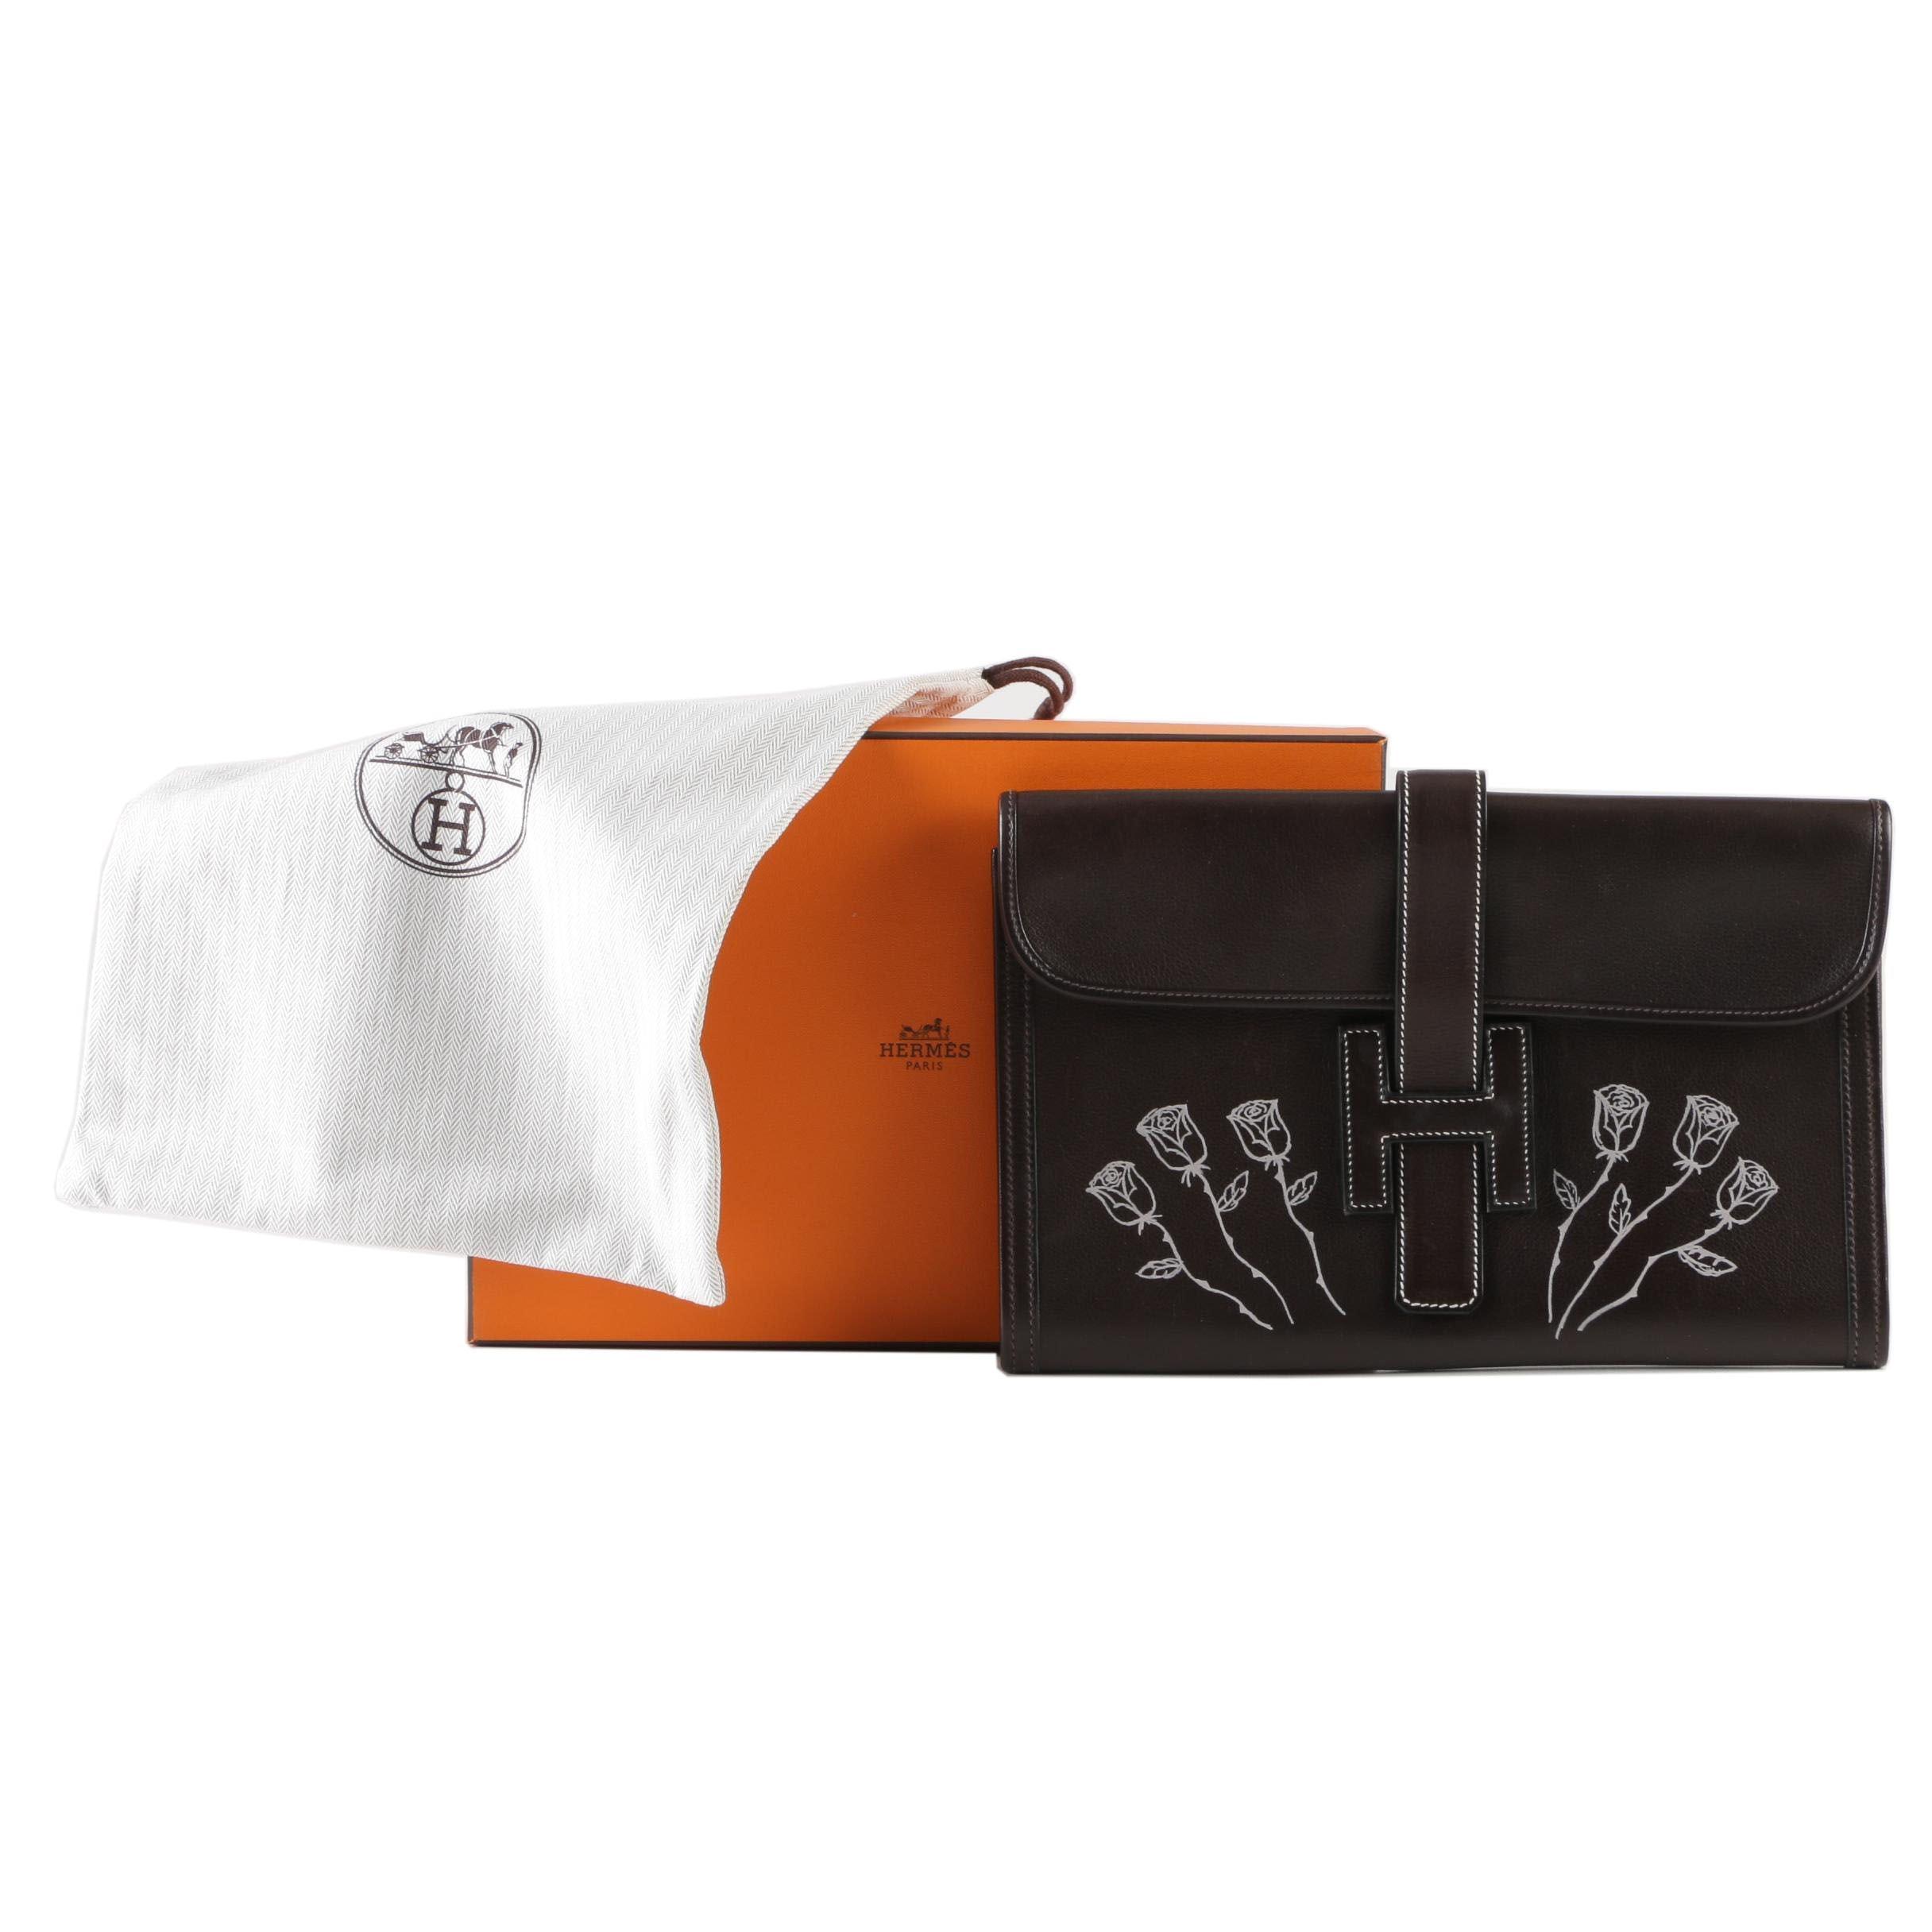 Hermès Jige Elan 29 Clemence Leather Clutch with Customized Embellishment